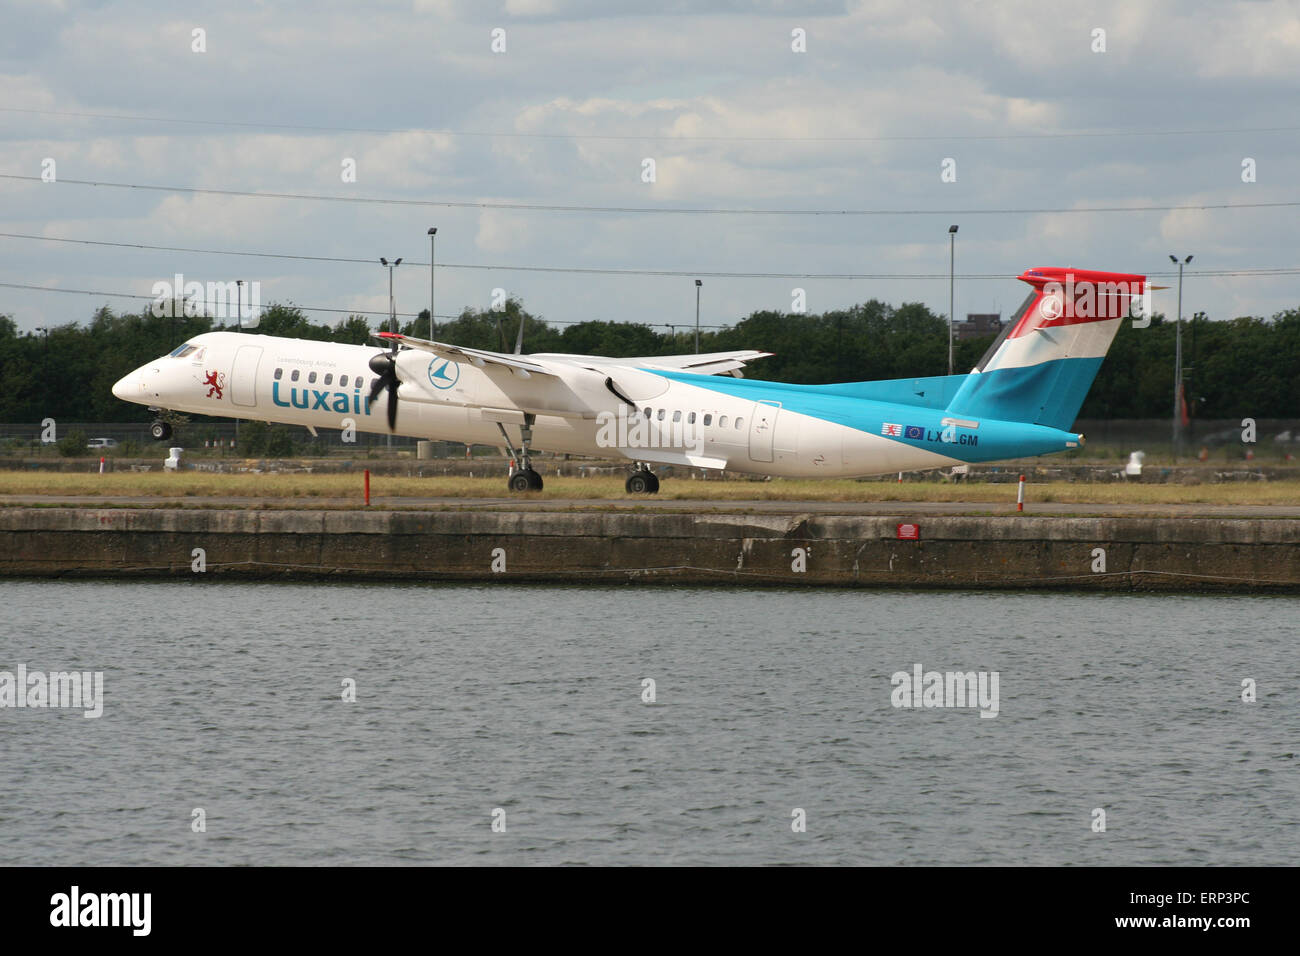 LUXAIR BOMBARDIER Q400 LONDON CITY DOCKLANDS - Stock Image